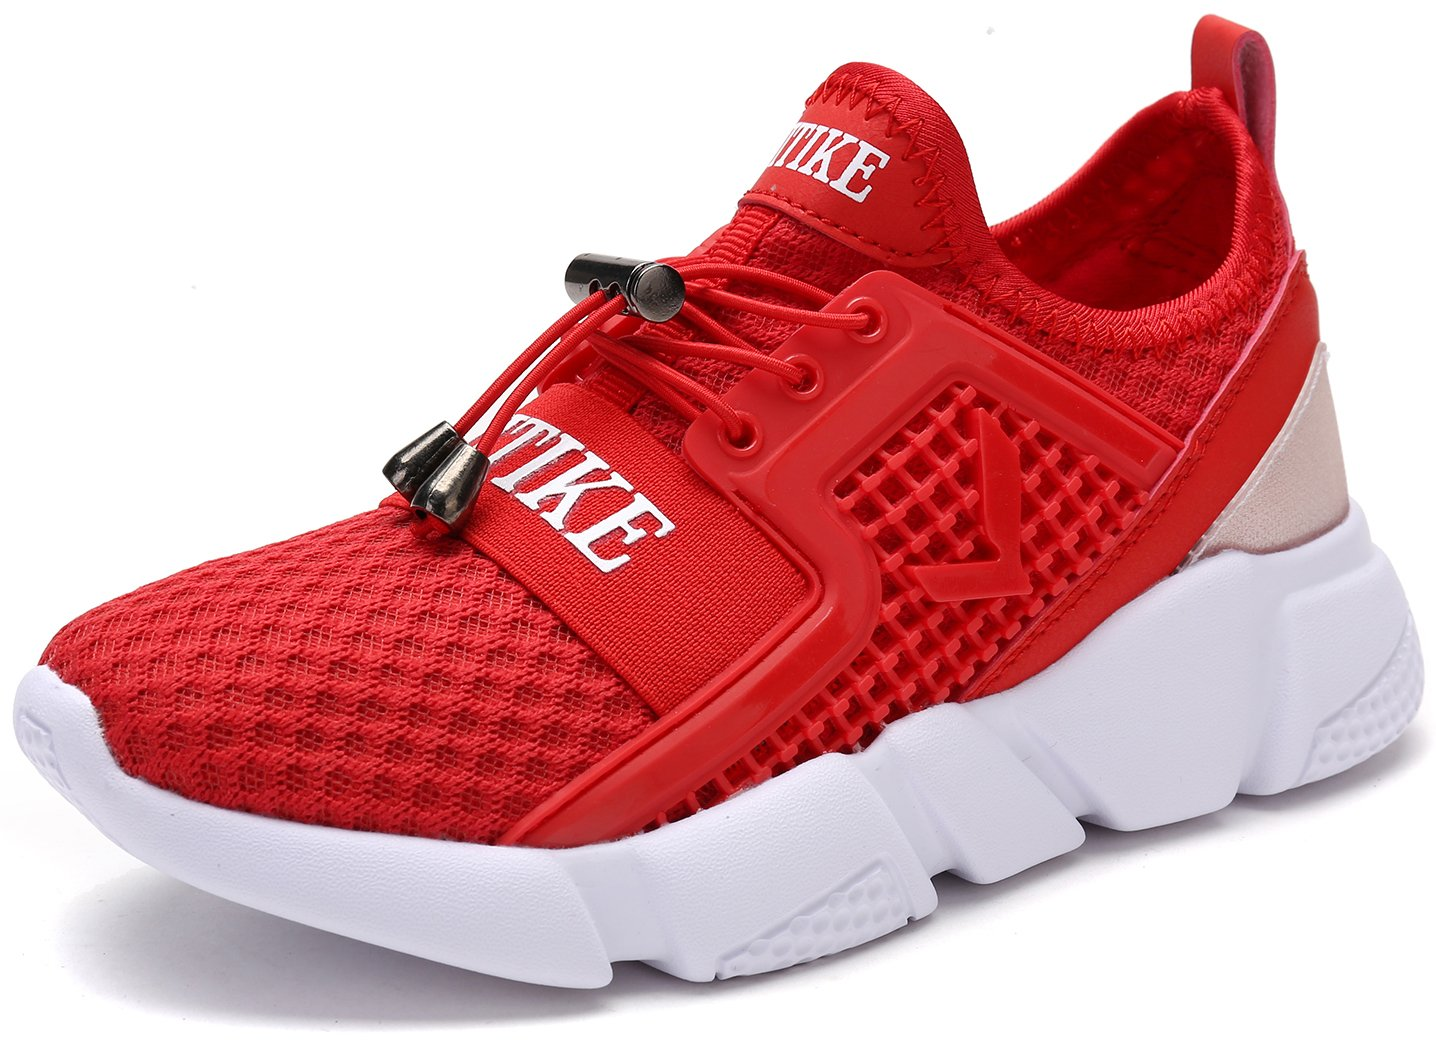 VITIKE Sneakers for Boys and Girls, Kids Running Lightweight Shoes - Athletic Tennis Shoe Comfort Mesh Breathable